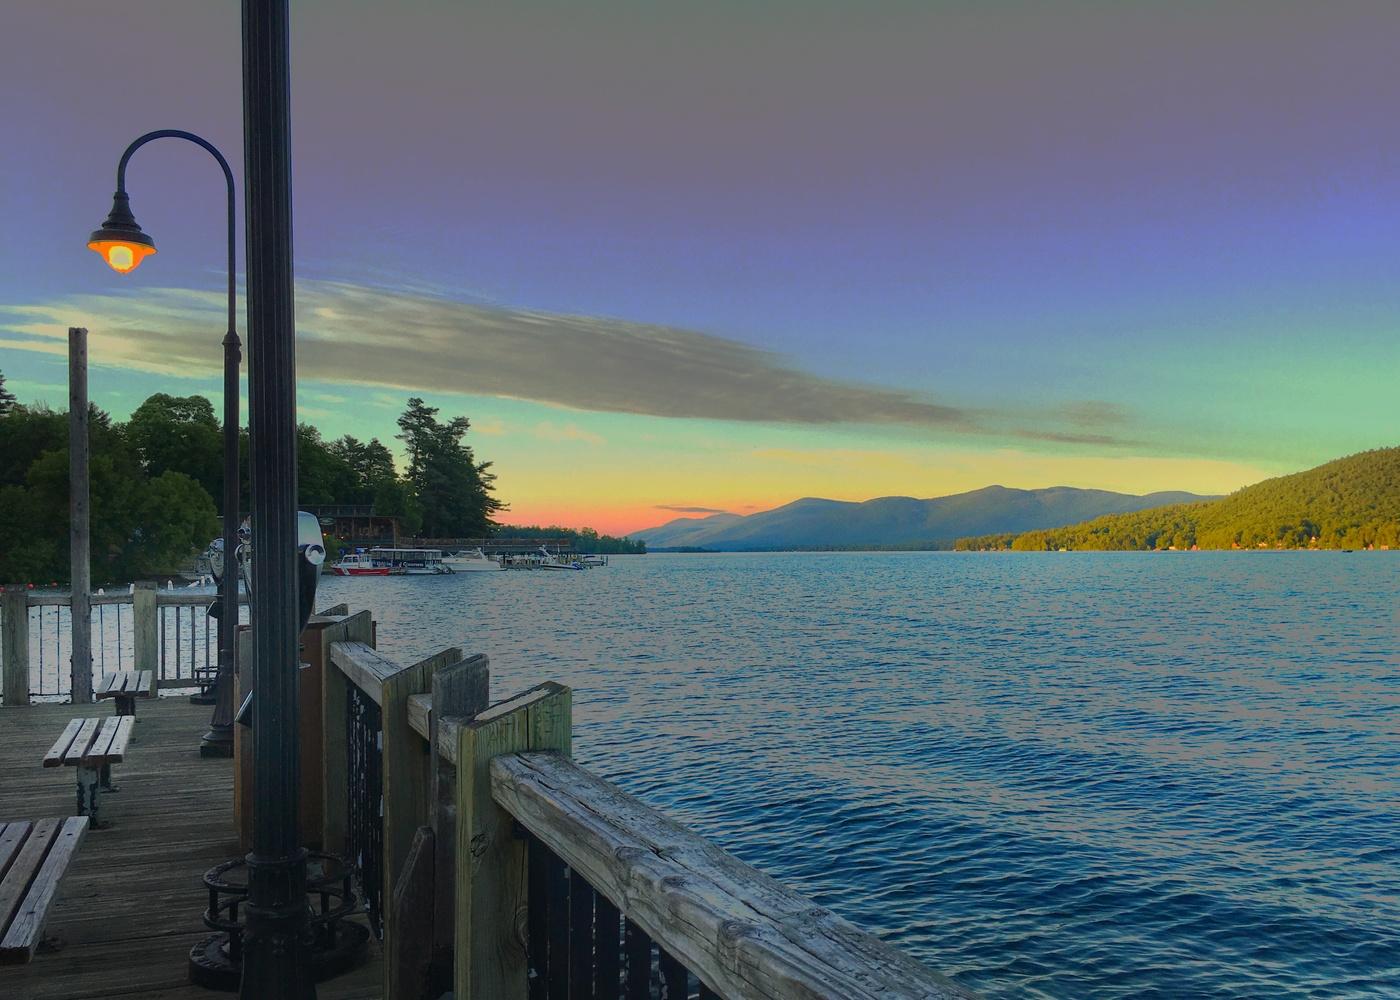 Dock on Lake George at Sunset by Diane Marie